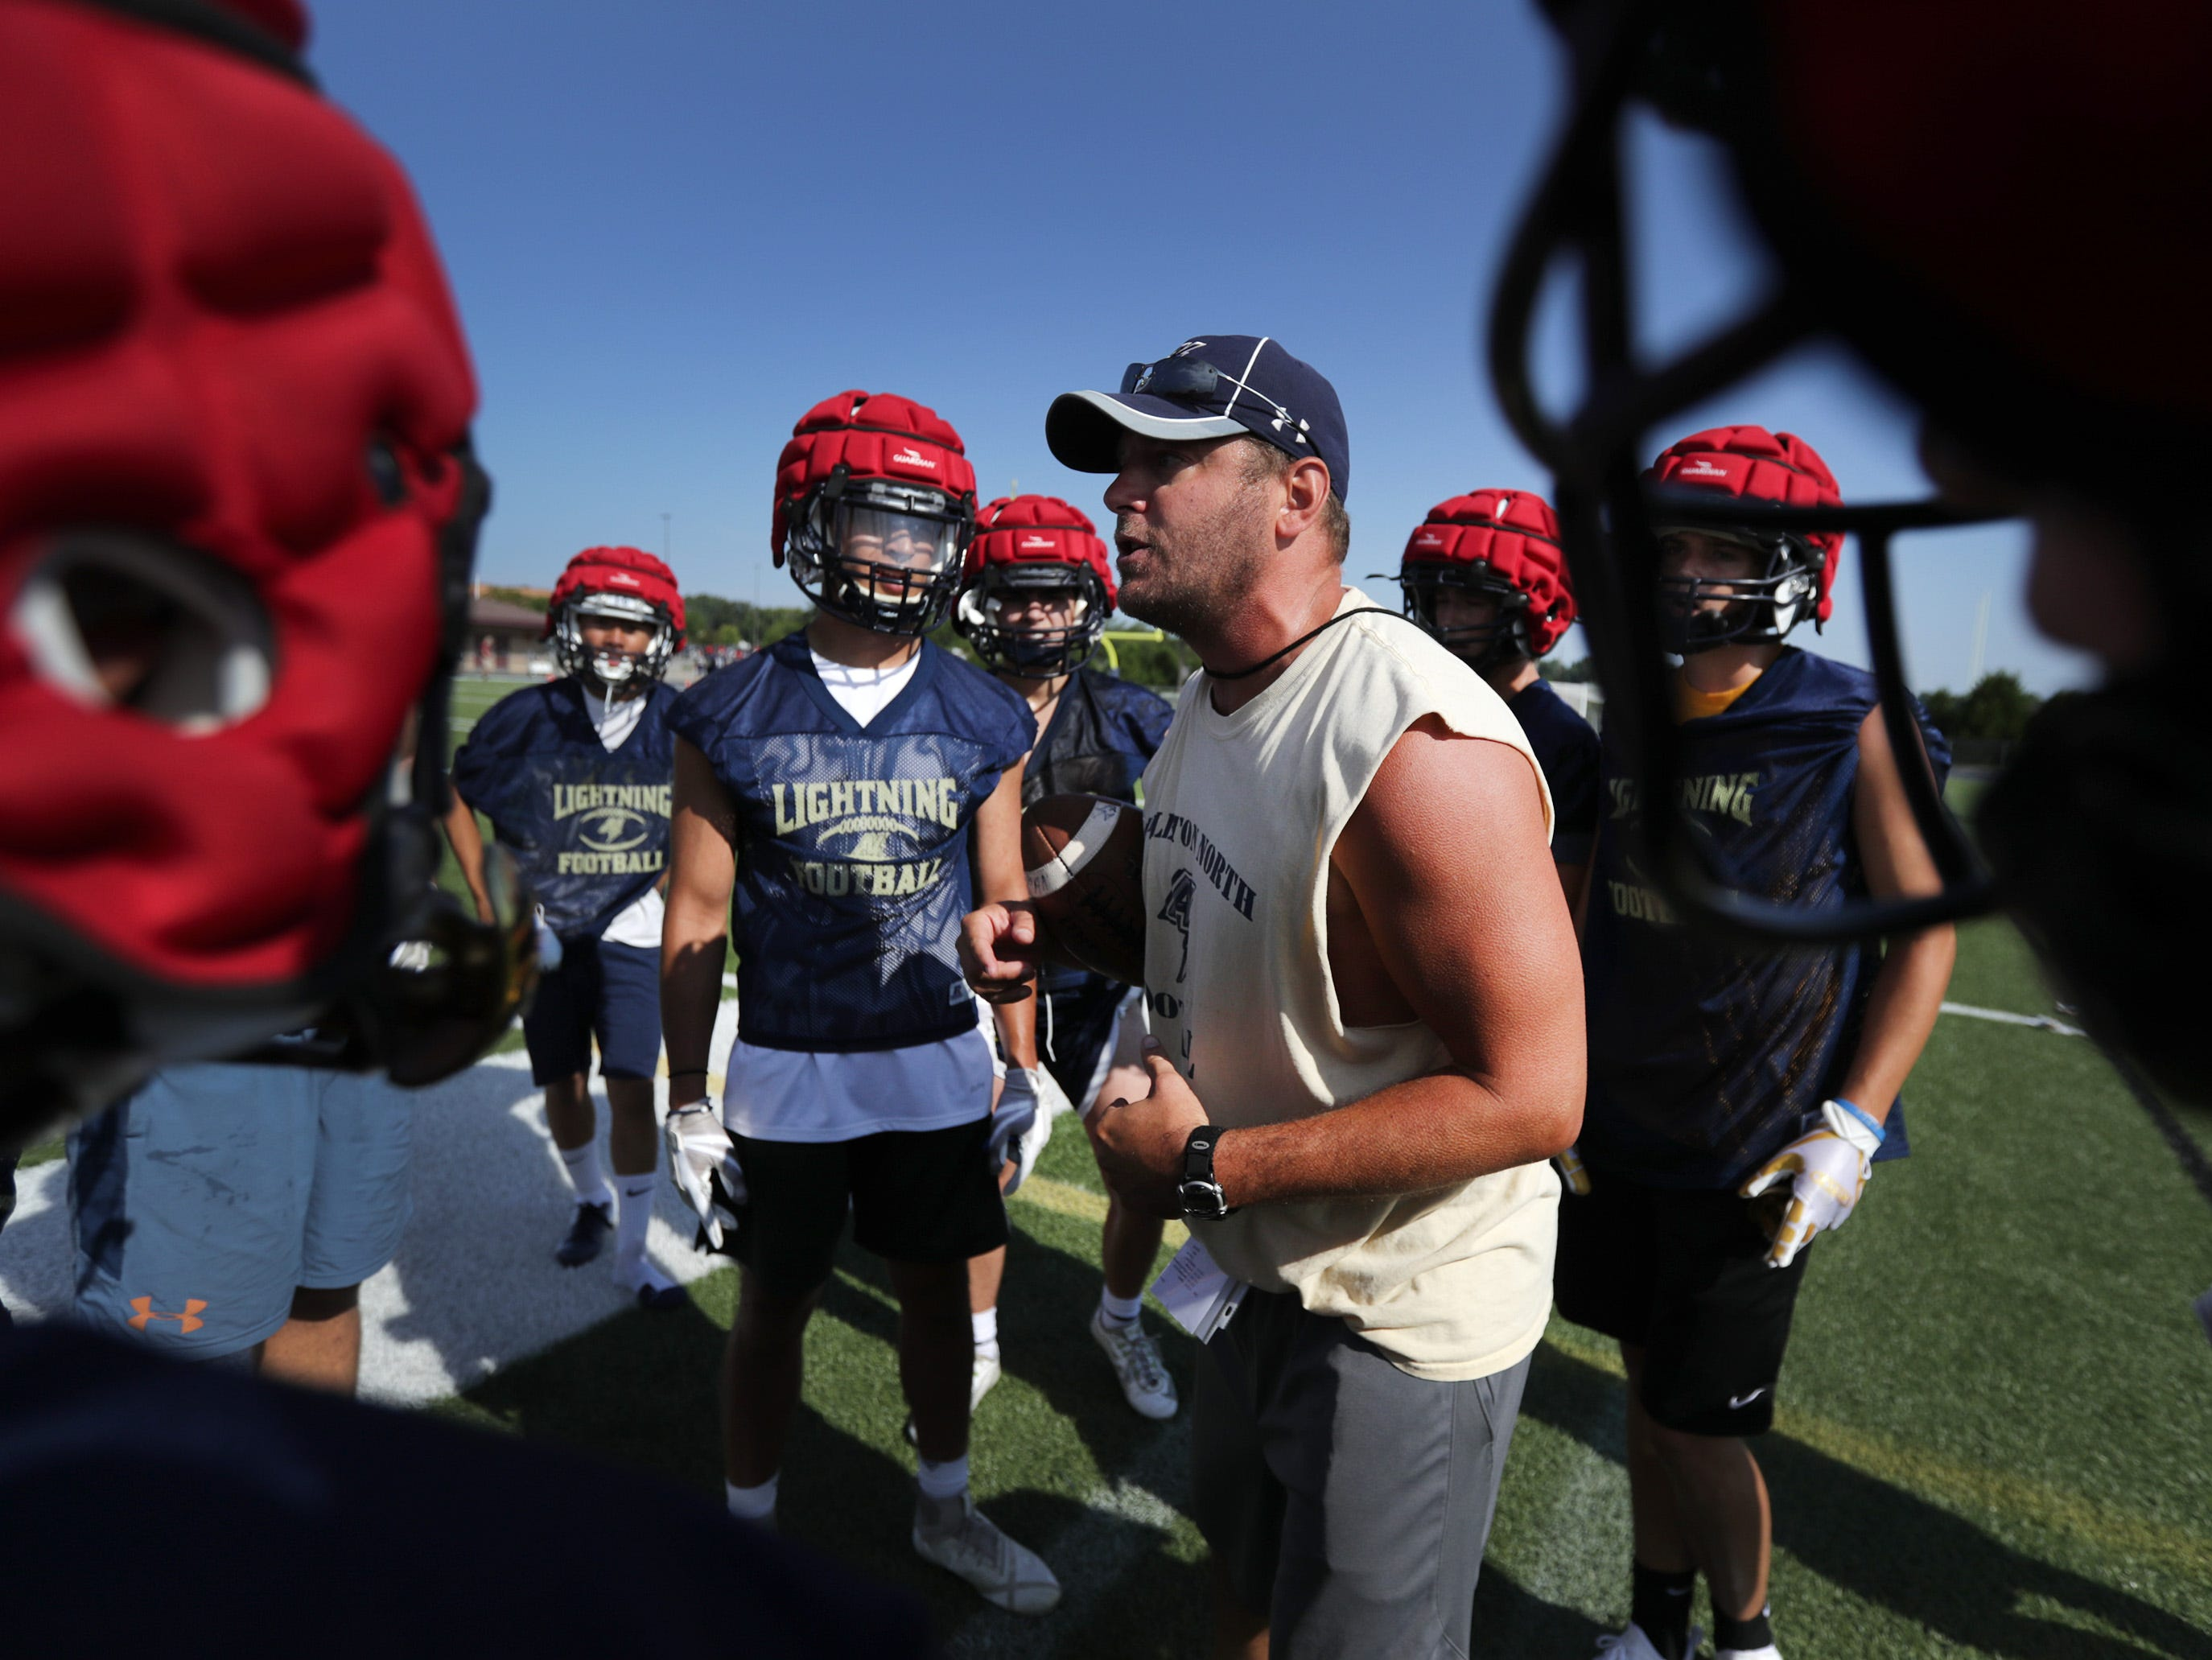 Appleton North Lightning's defensive back coach Matt Belowski during practice on Wednesday August 1, 2018 at Appleton North High School in Appleton Wis.